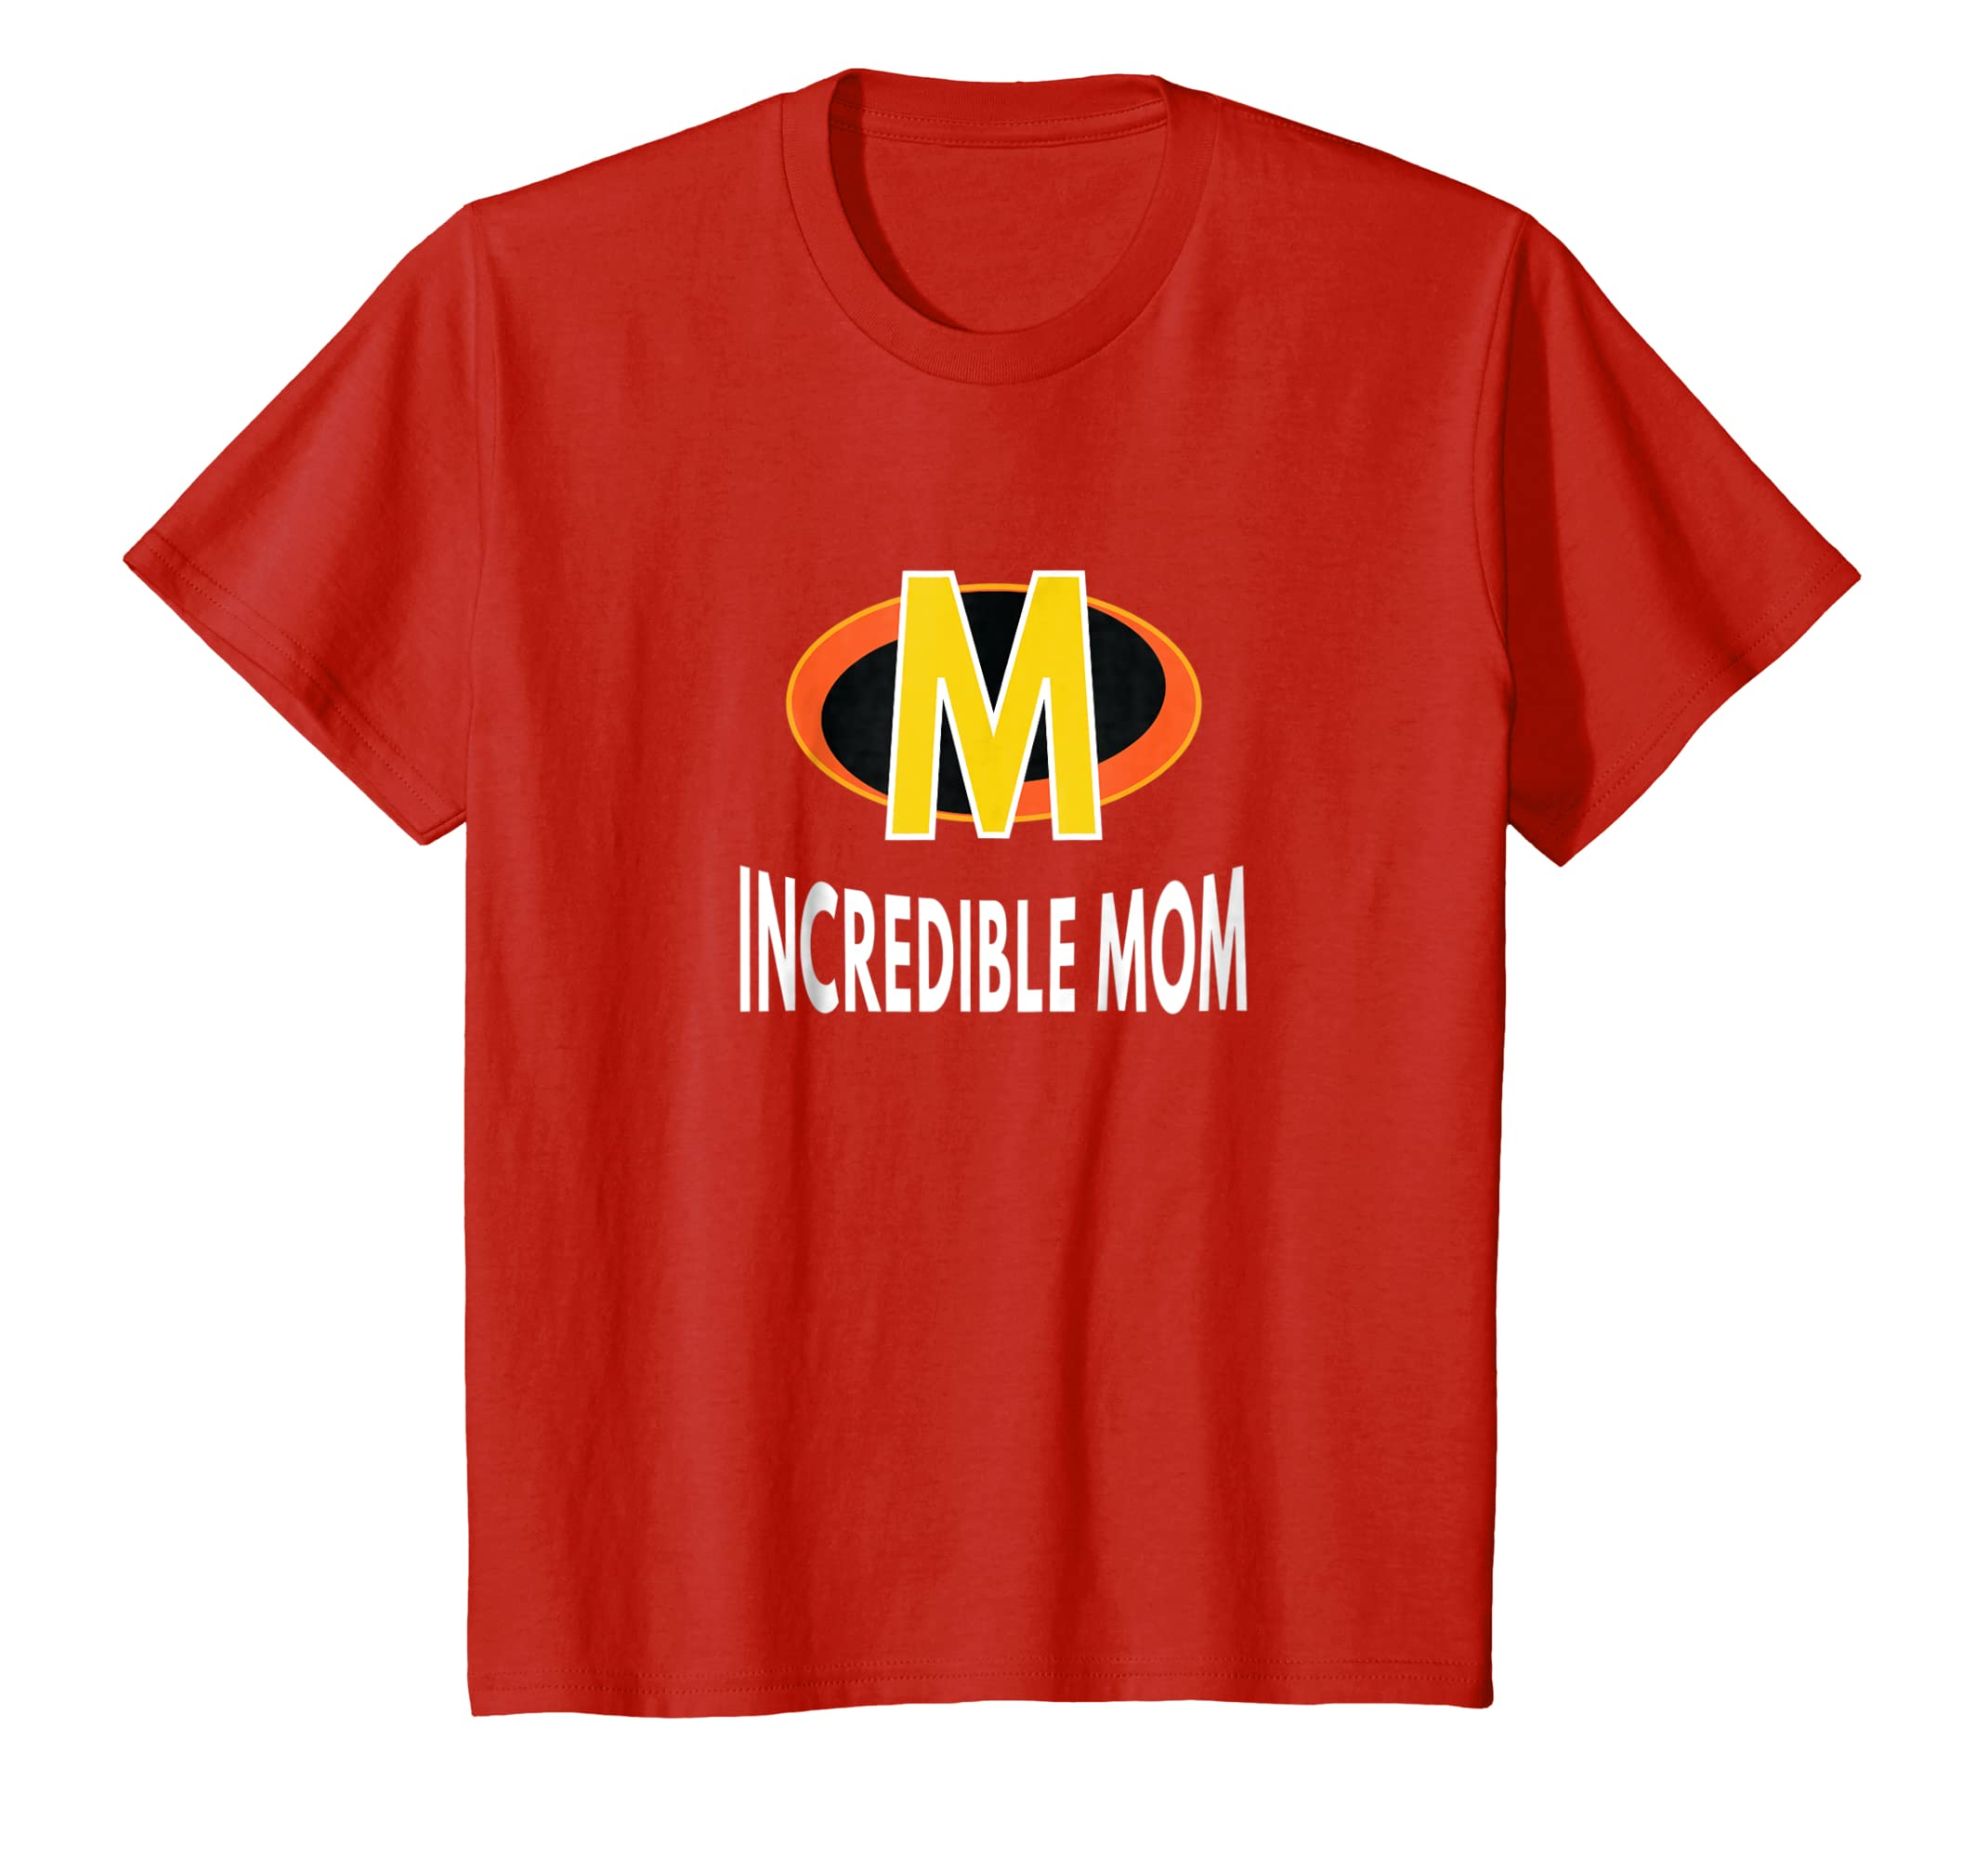 The Incredible Mom Superhero T Shirt for Women (Bold Text)